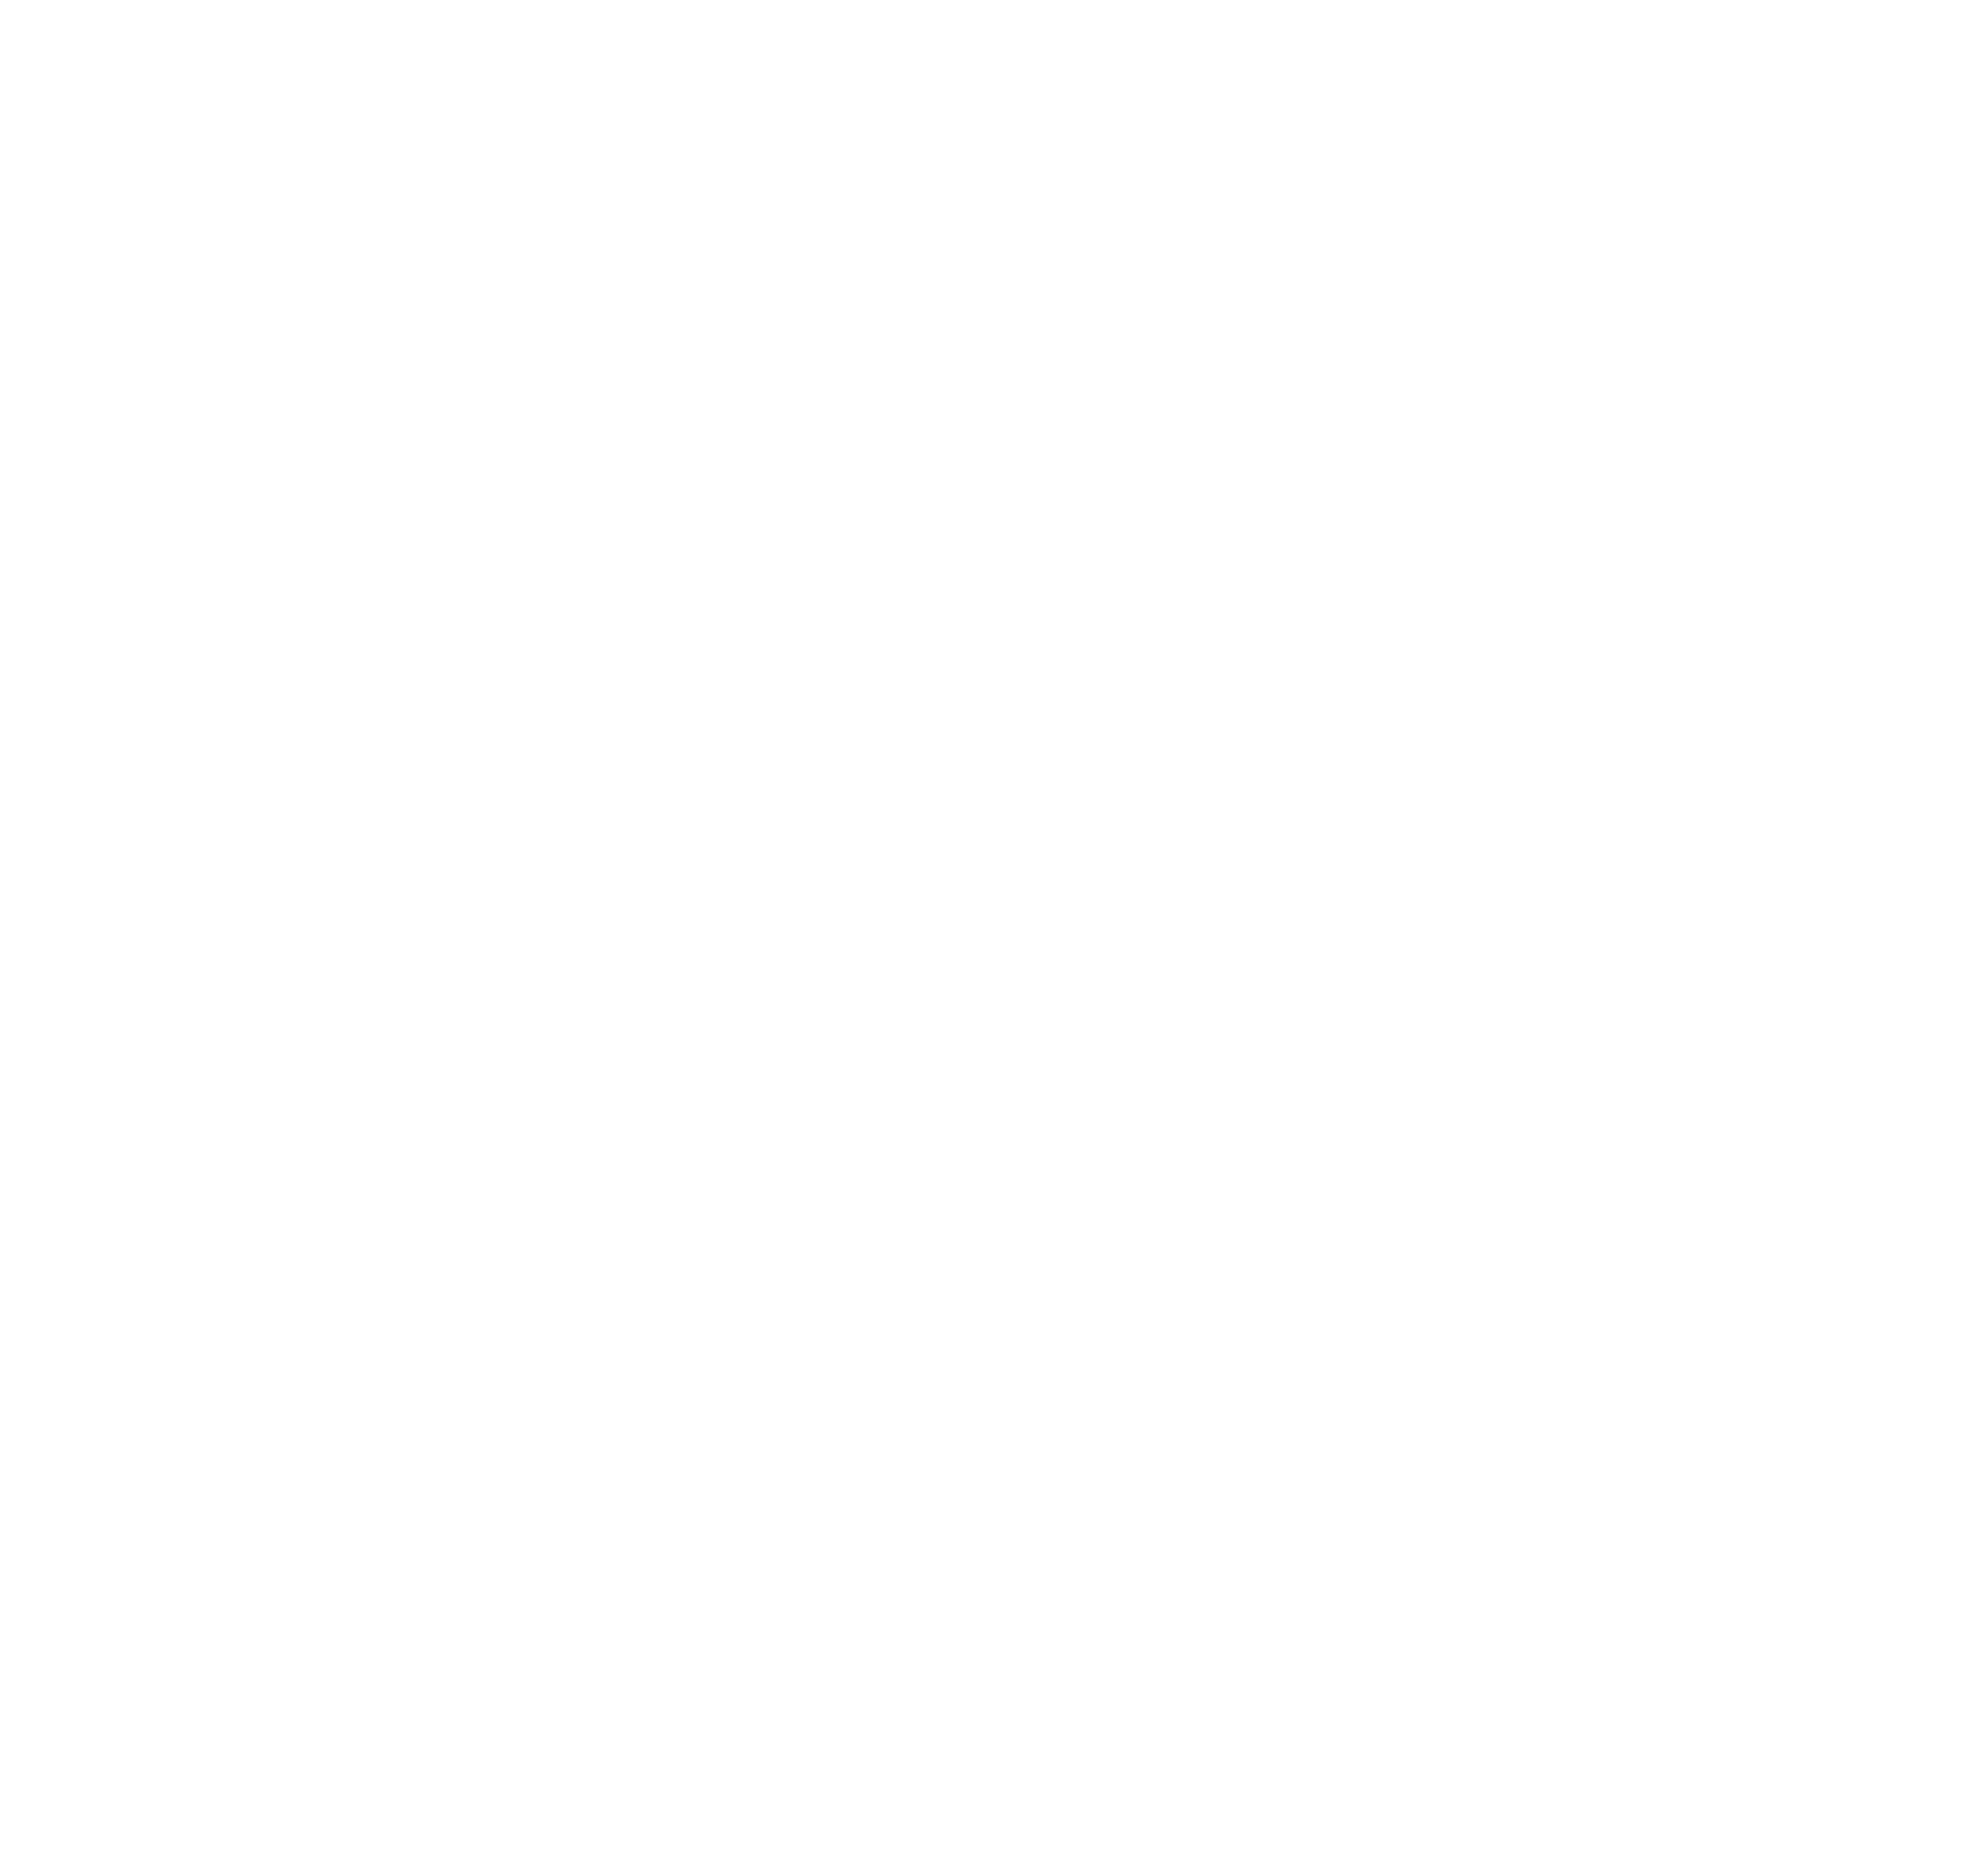 New Hampshire Manufactured Housing Association